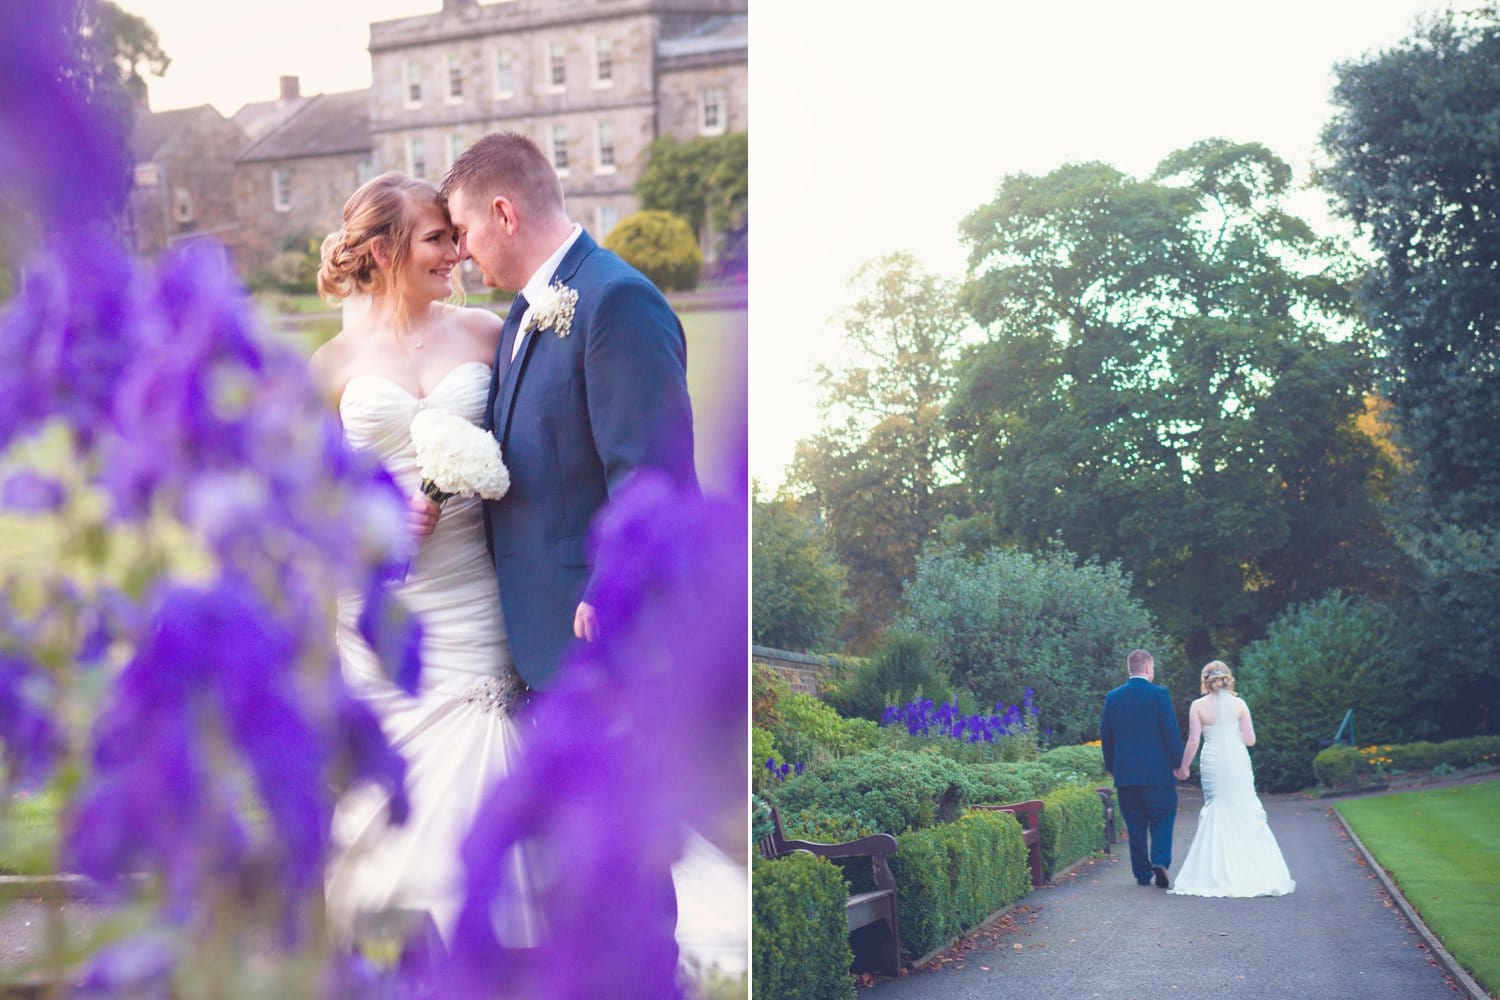 Hexham Abbey Wedding, bride and groom romance